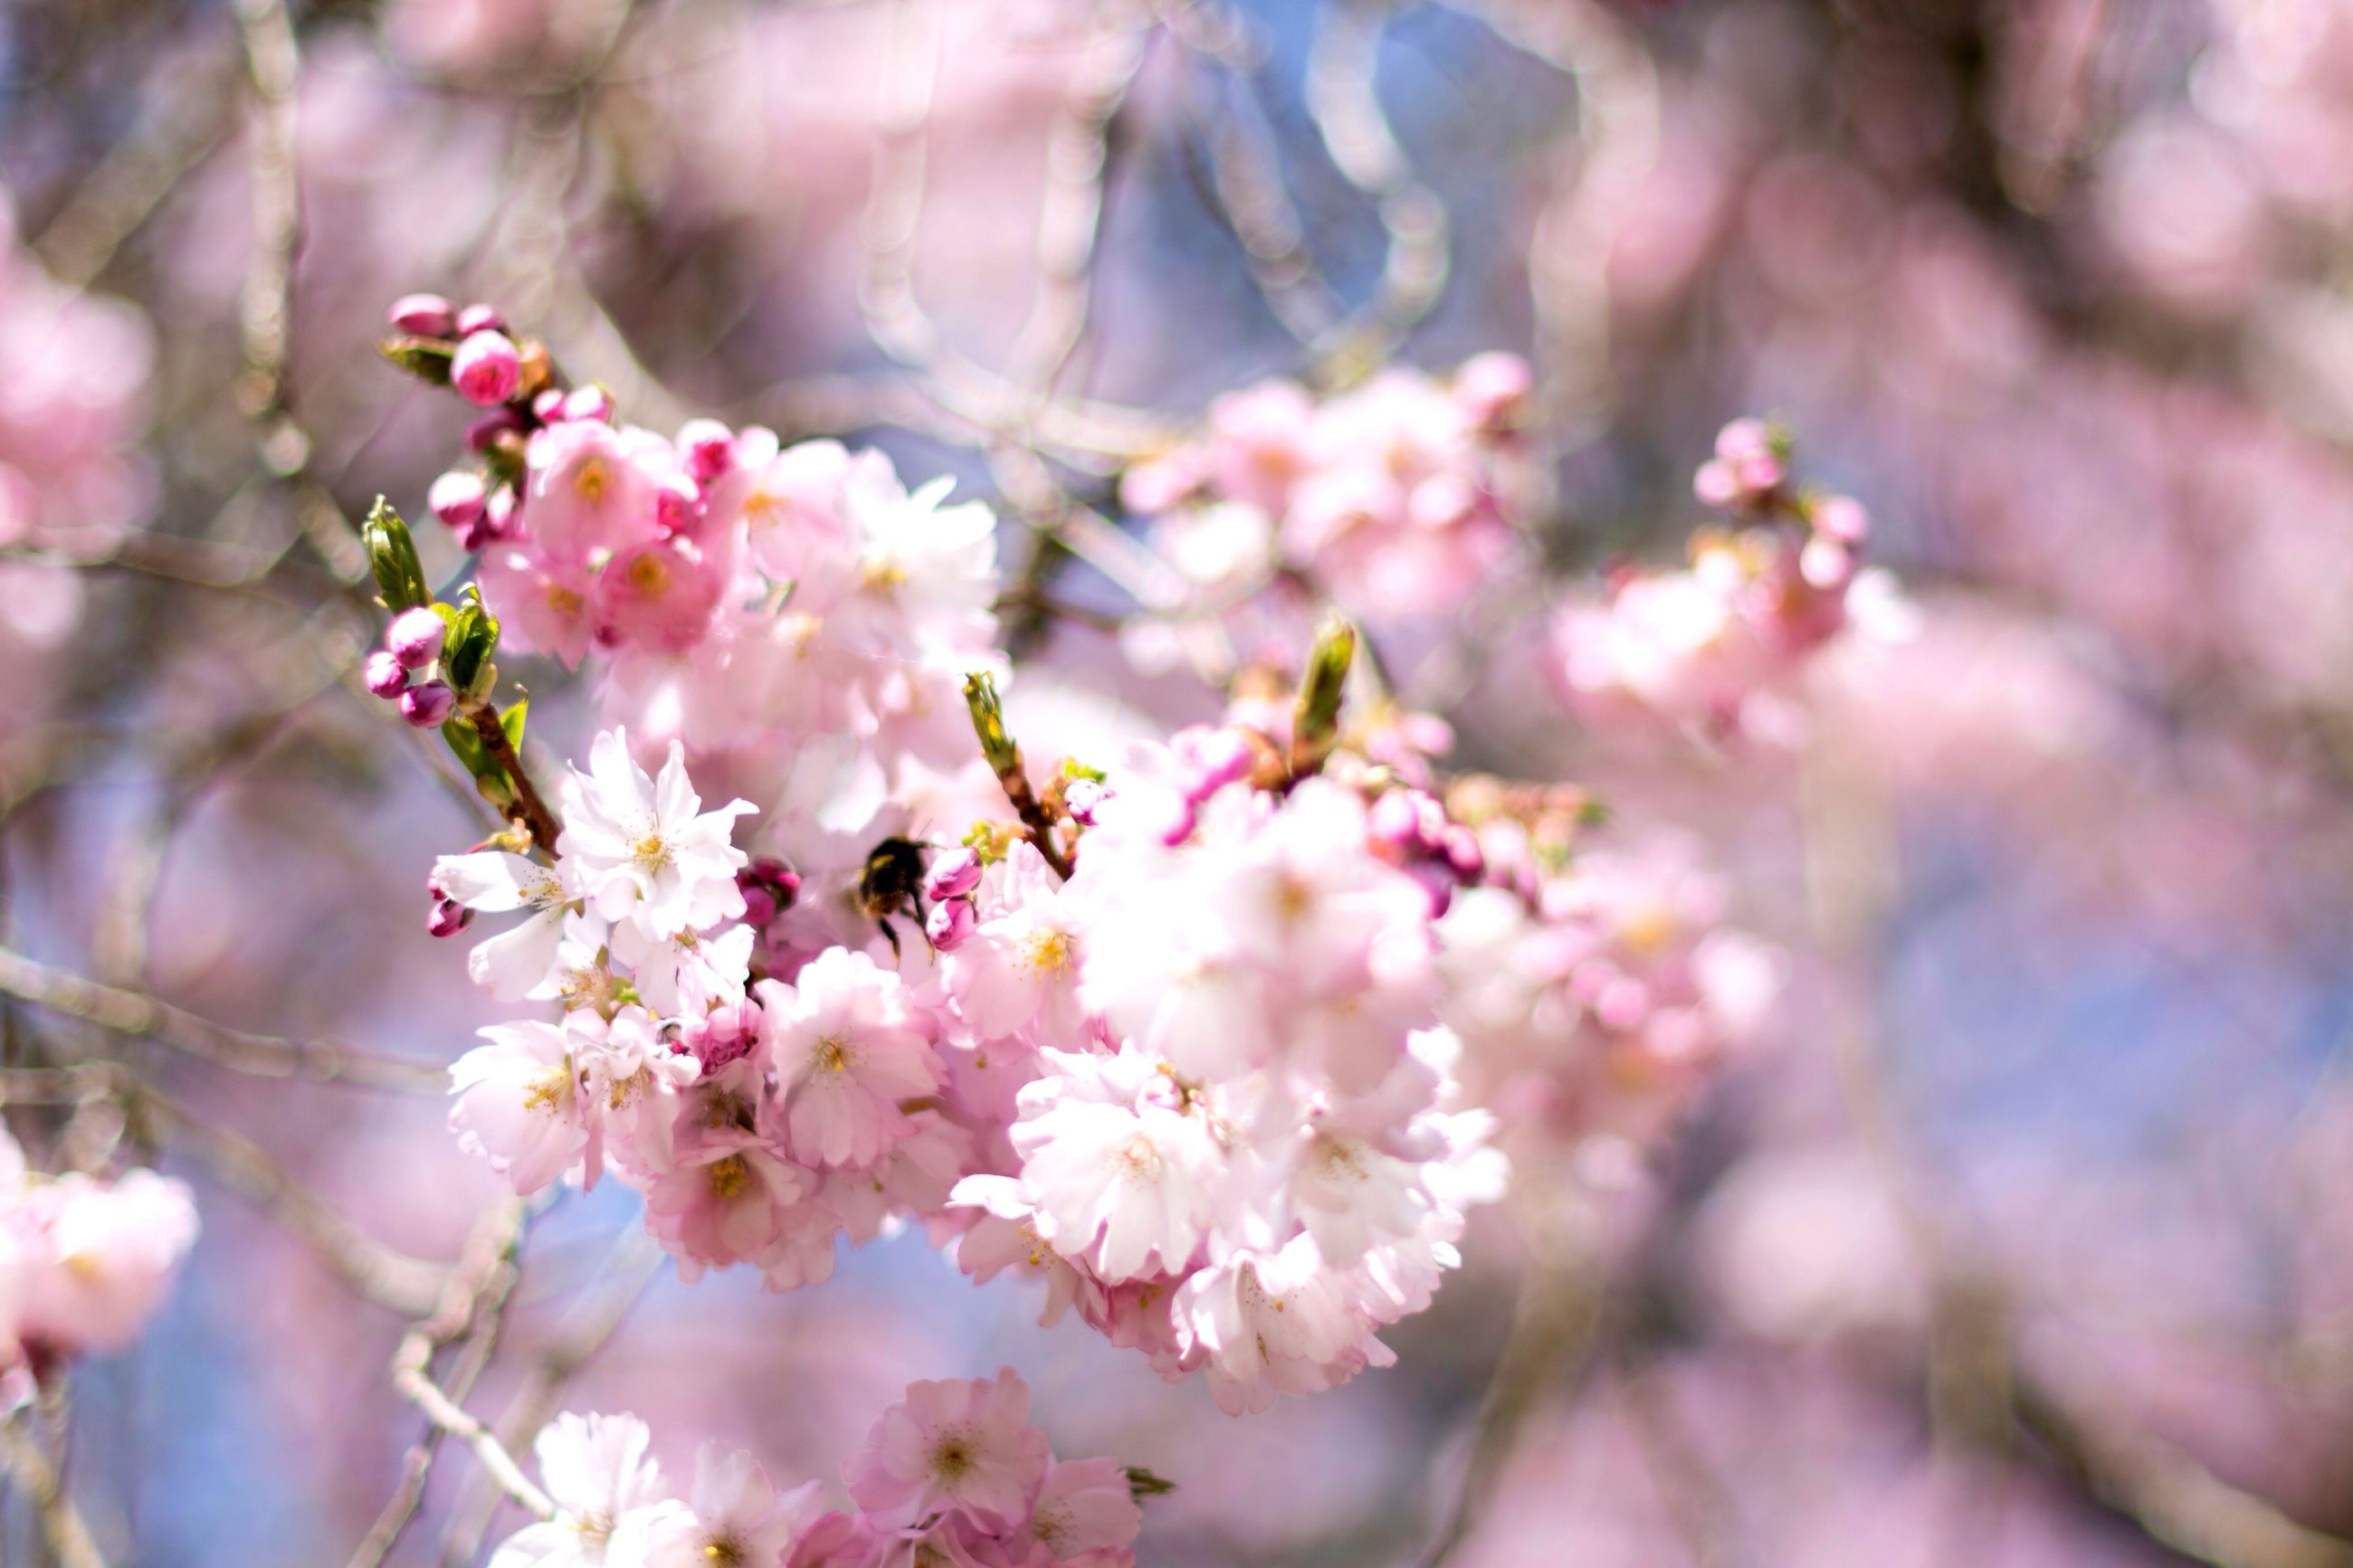 flower, fragility, blossom, beauty in nature, growth, pink color, tree, nature, springtime, freshness, branch, botany, petal, no people, day, selective focus, close-up, apple blossom, outdoors, flower head, blooming